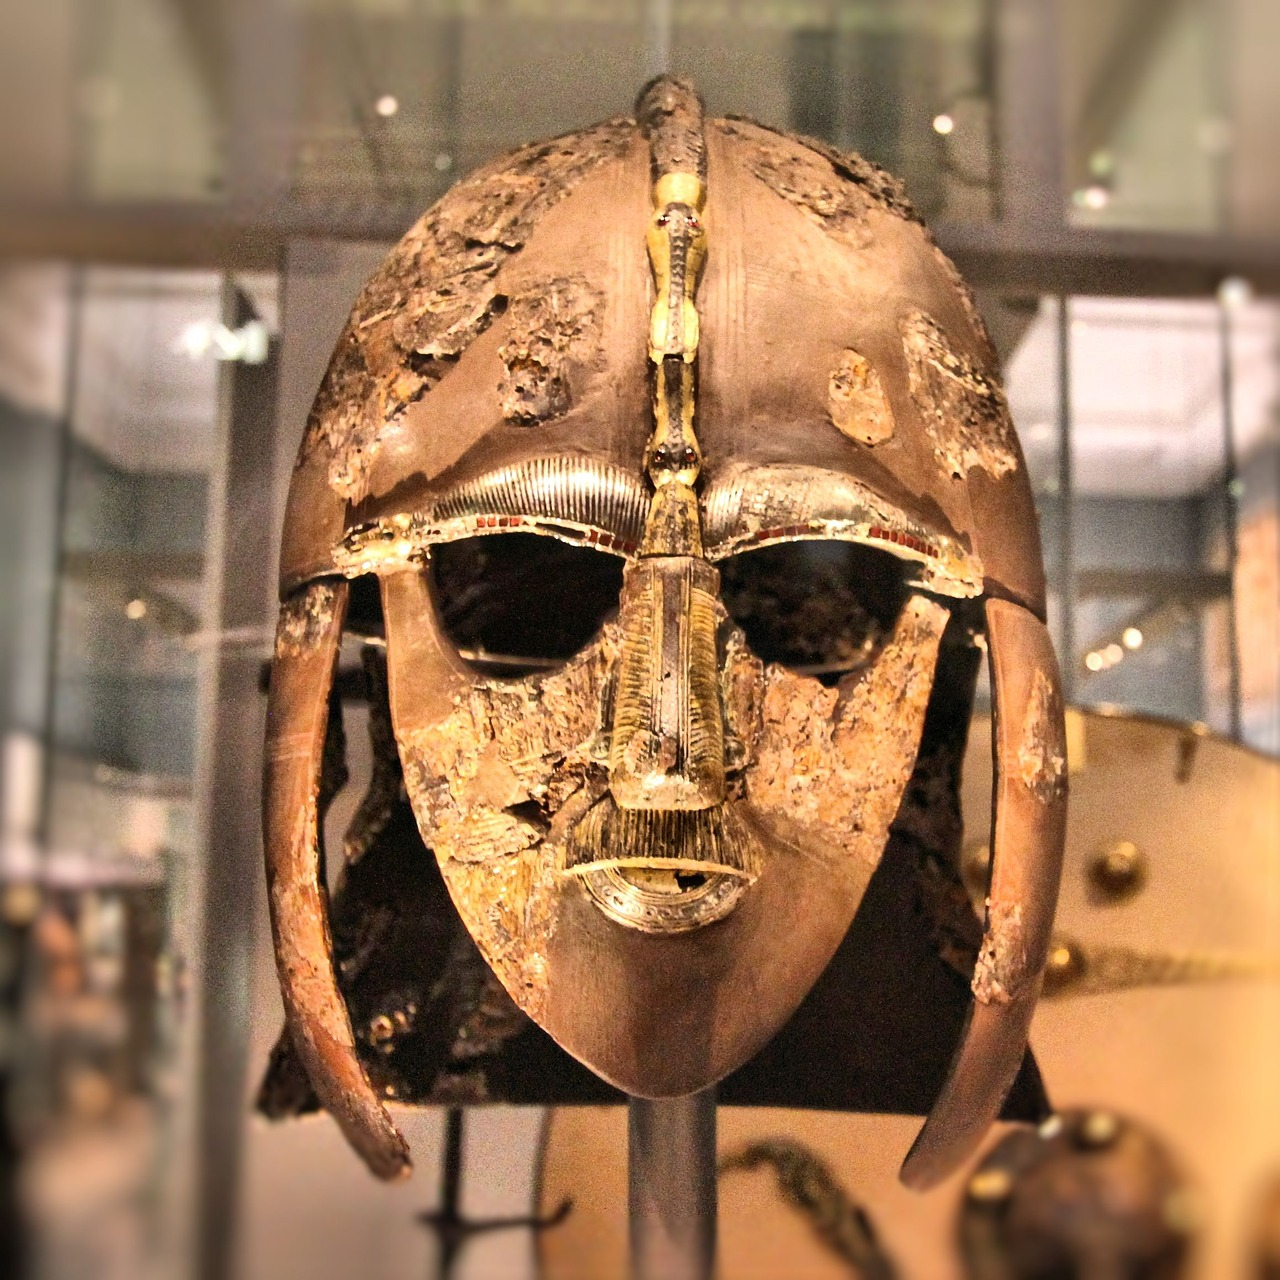 A better Beowulf unit begins with Sutton Hoo